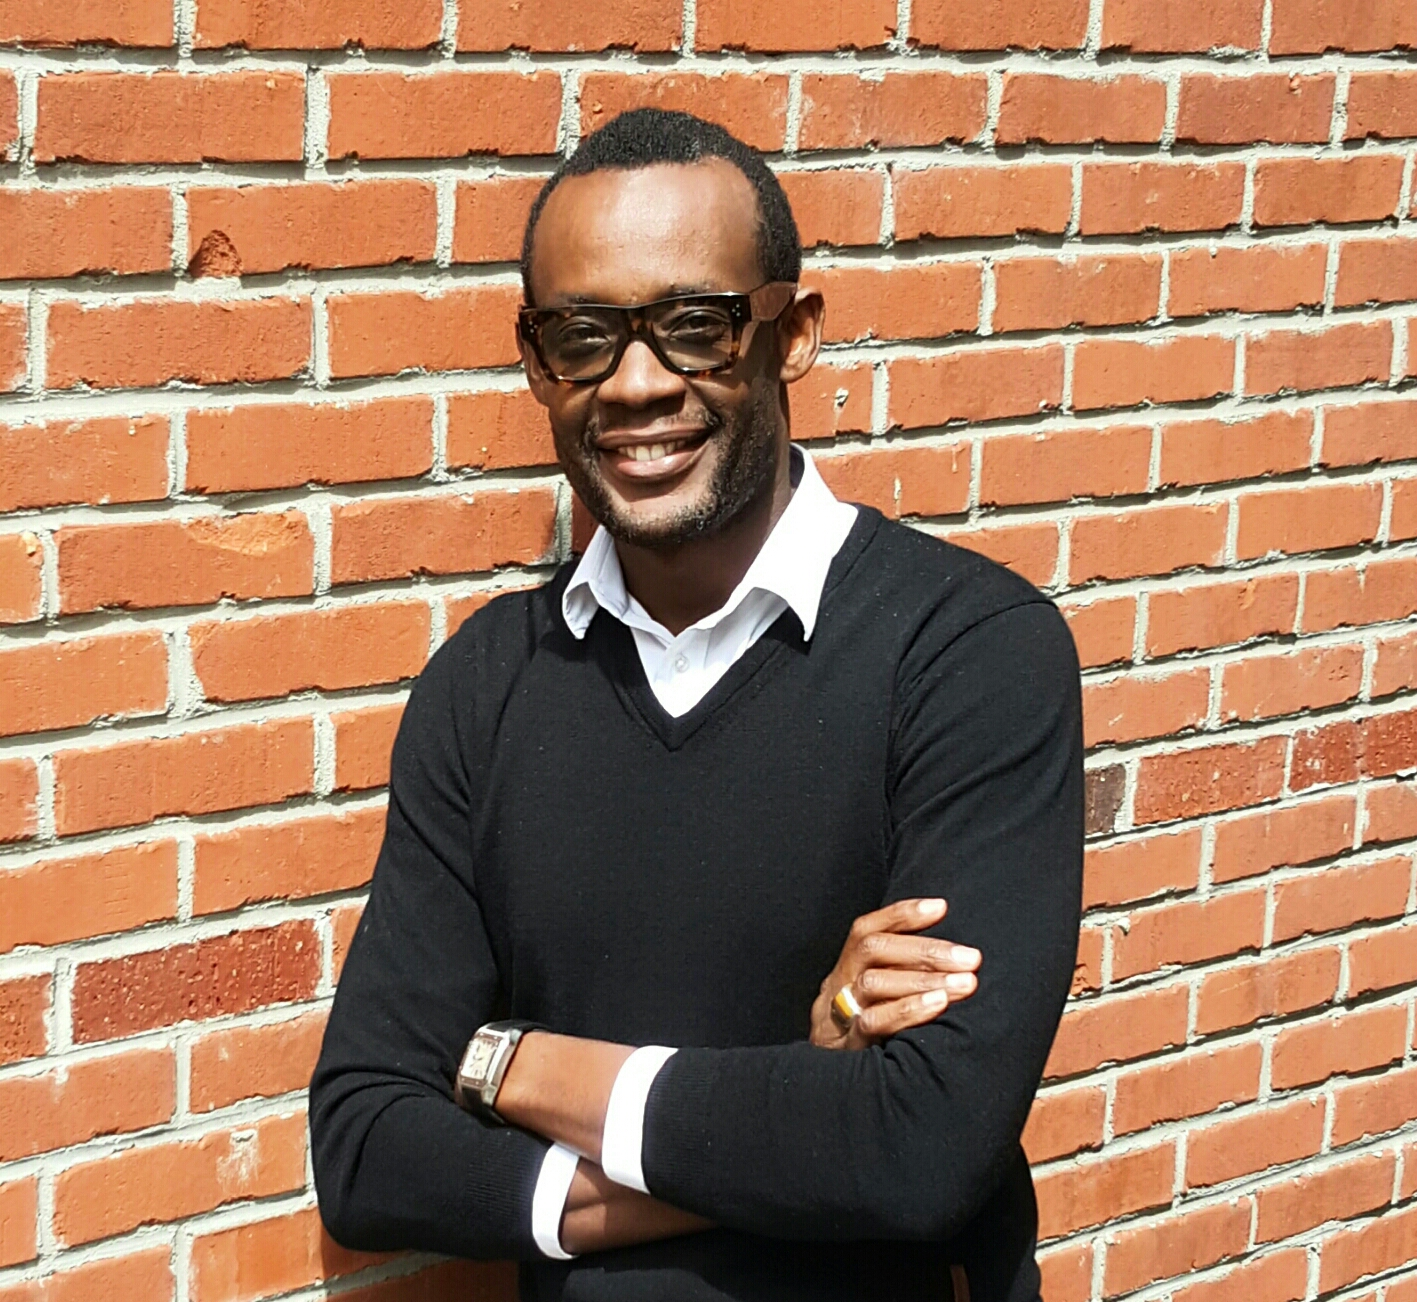 Akmann Van-Mary is co-founder and CEO of MyLumper